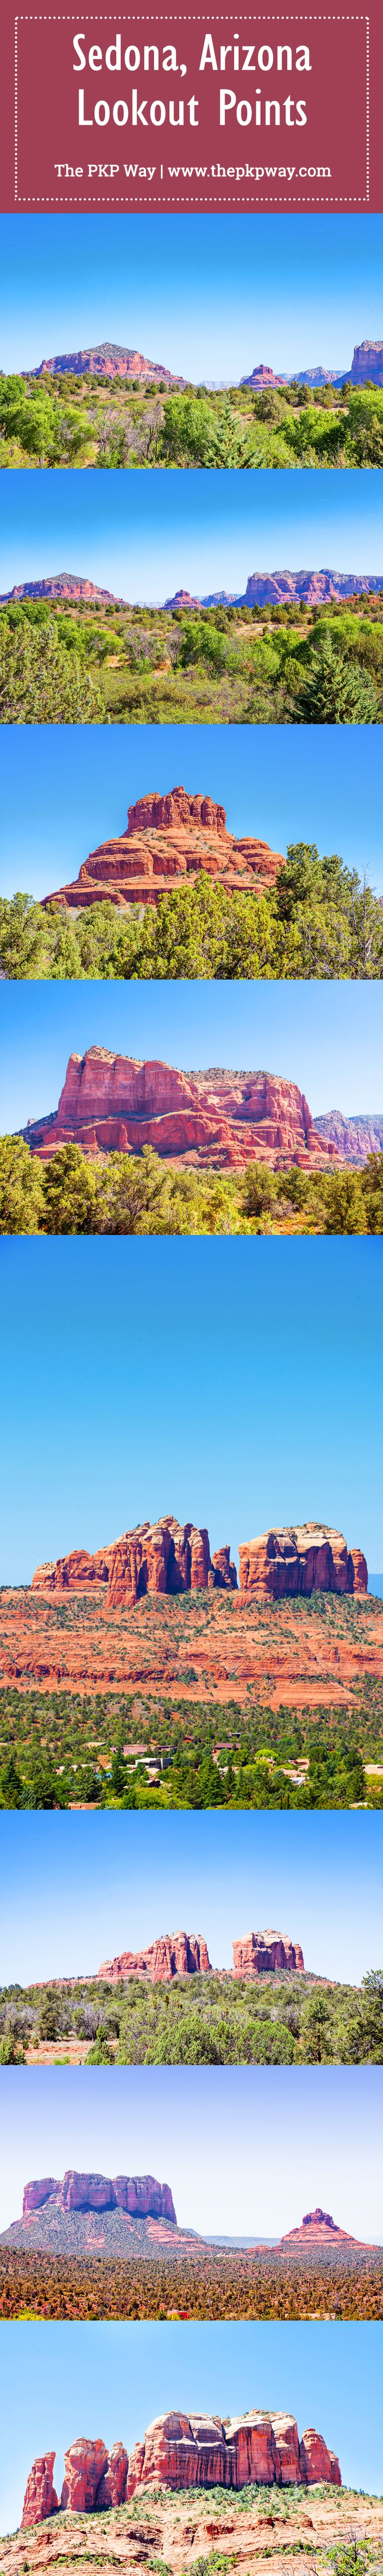 A day of Hiking in Sedona, Arizona - where to stop and which trails to hike